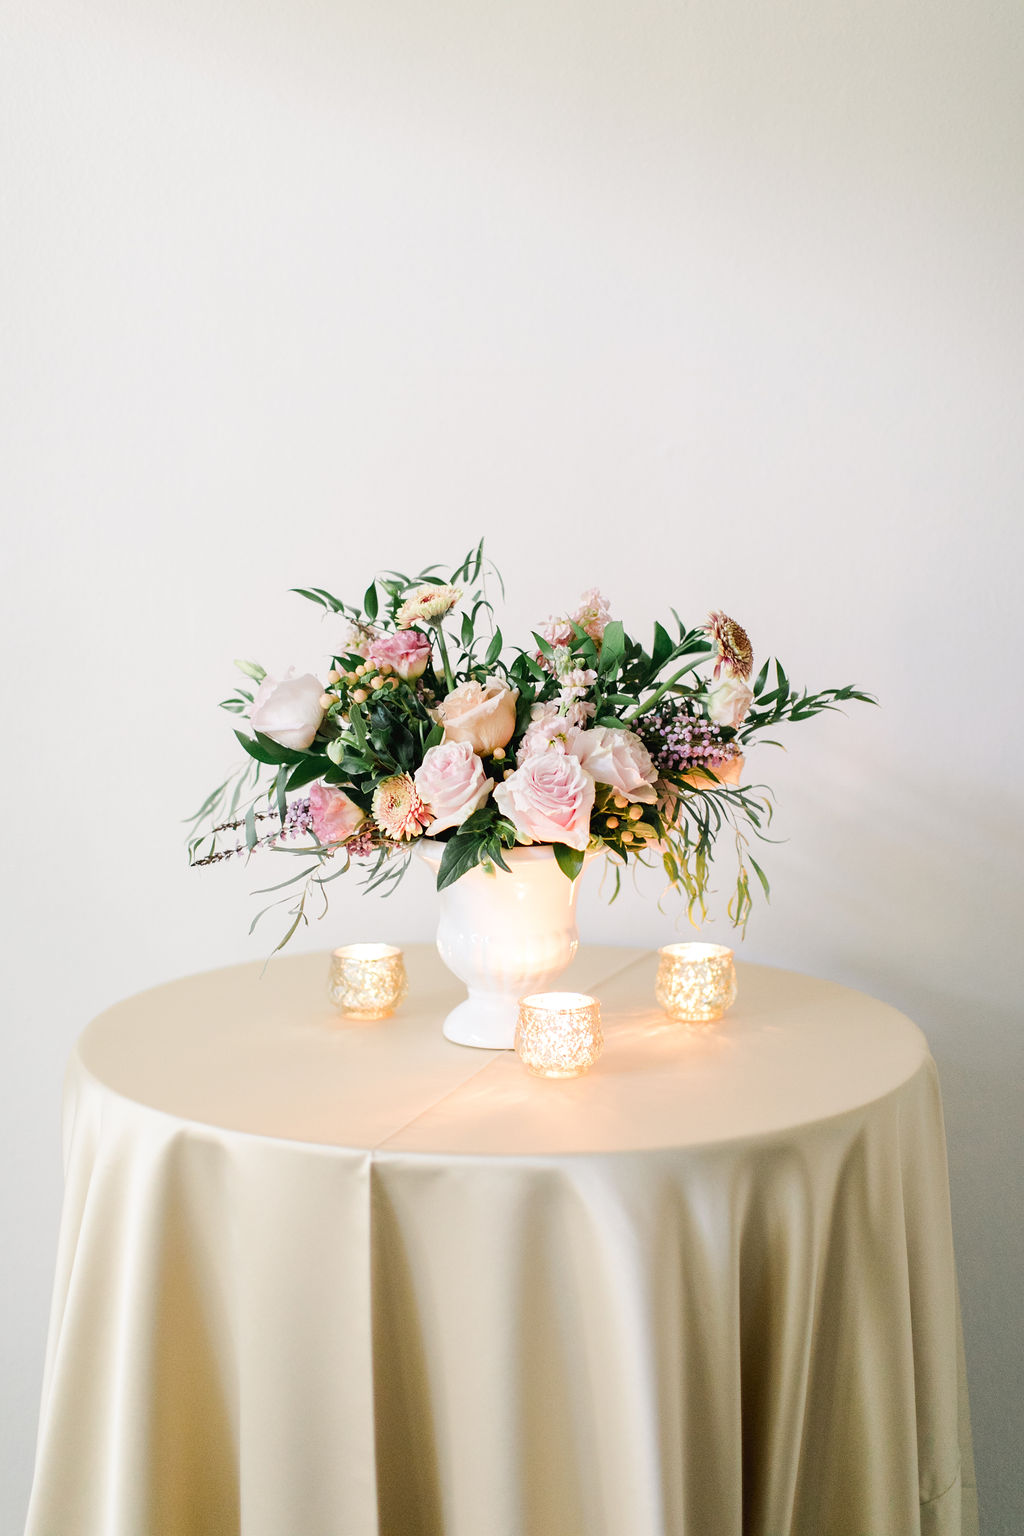 sav floral design | captured by jose alvarado photography